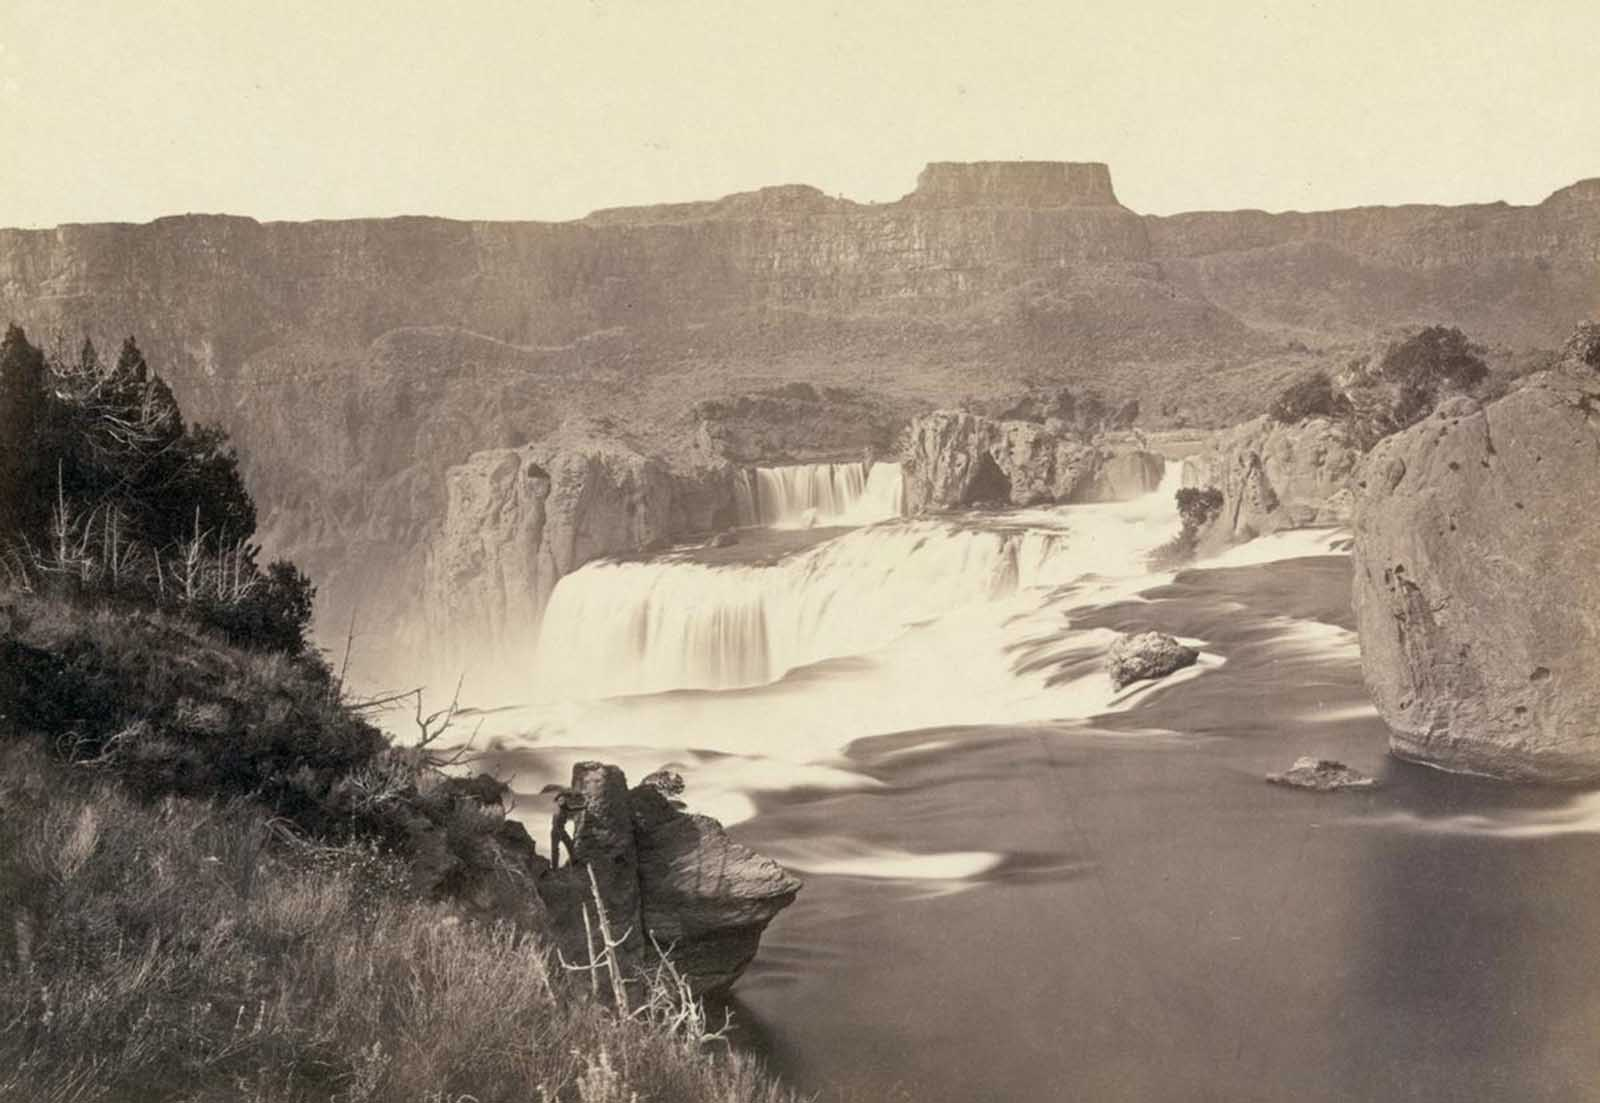 Shoshone Falls, Idaho, in 1868. Shoshone Falls, near present-day Twin Falls, Idaho, is 212 feet high, and flows over a rim 1,000 feet wide.